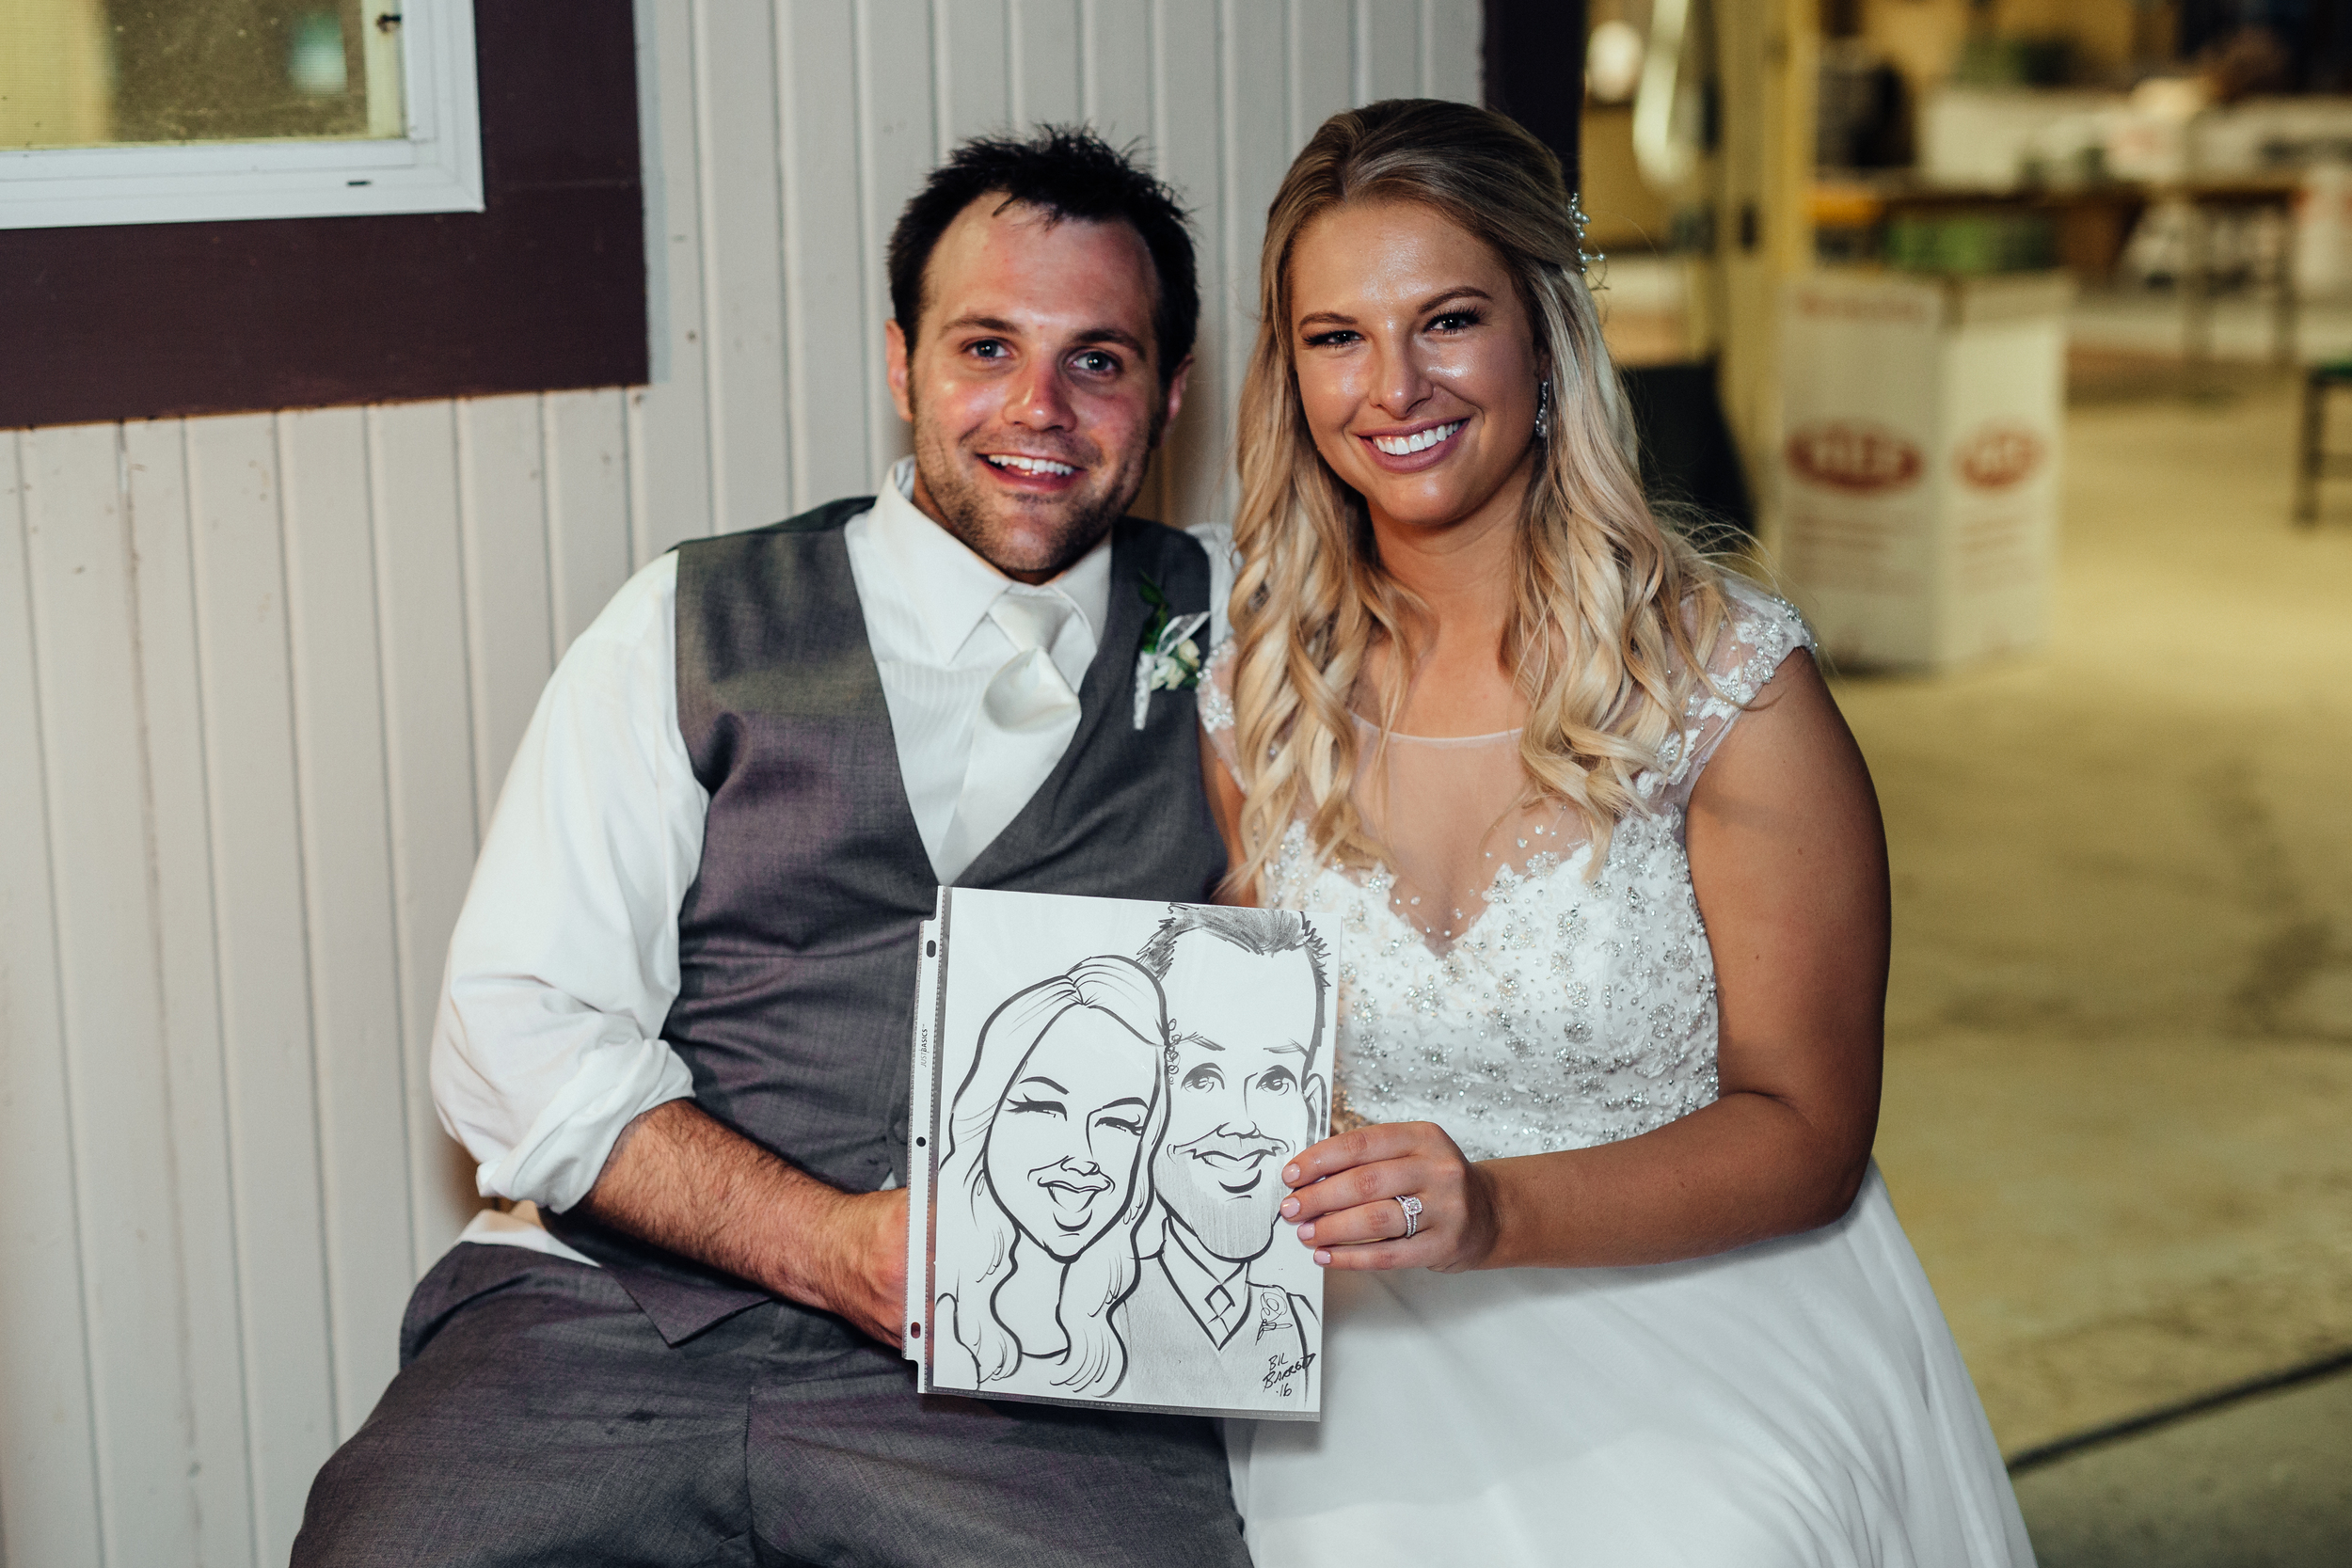 Bride and groom get caricature at wedding reception by Grin-N-Barrett.